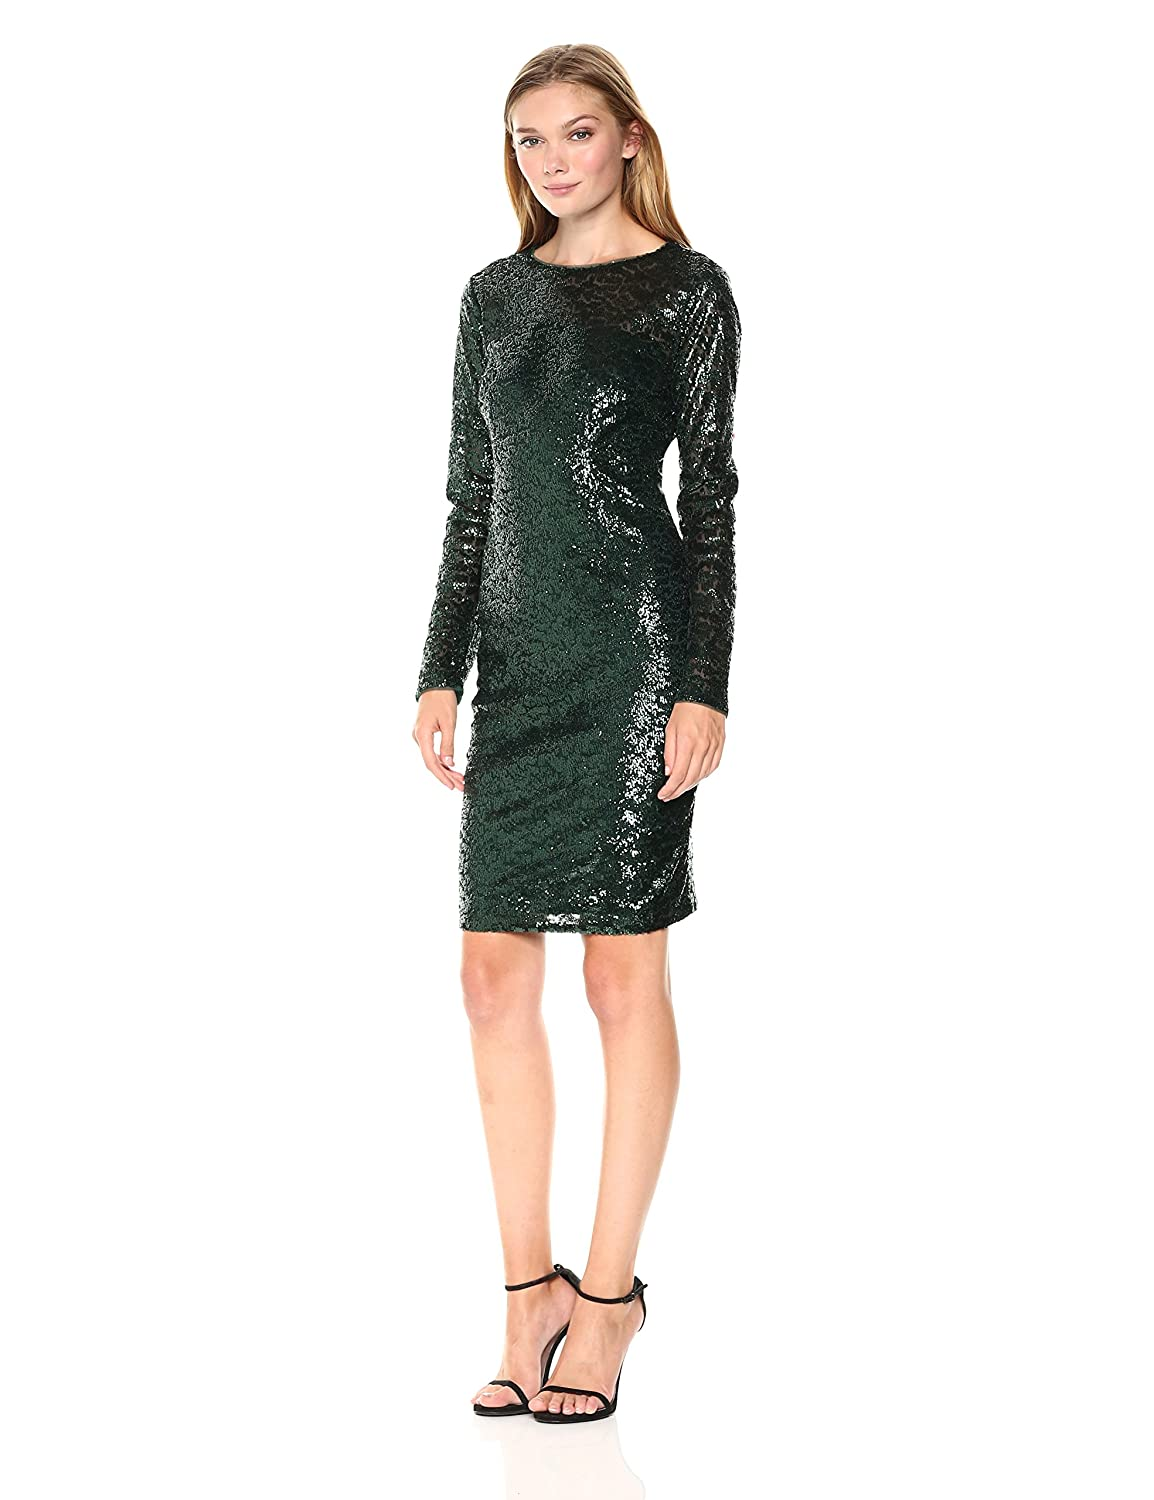 56b32a3d Carmen Marc Valvo Infusion Women's L/s Allover Sequin Sheath Cocktail Dress  at Amazon Women's Clothing store: